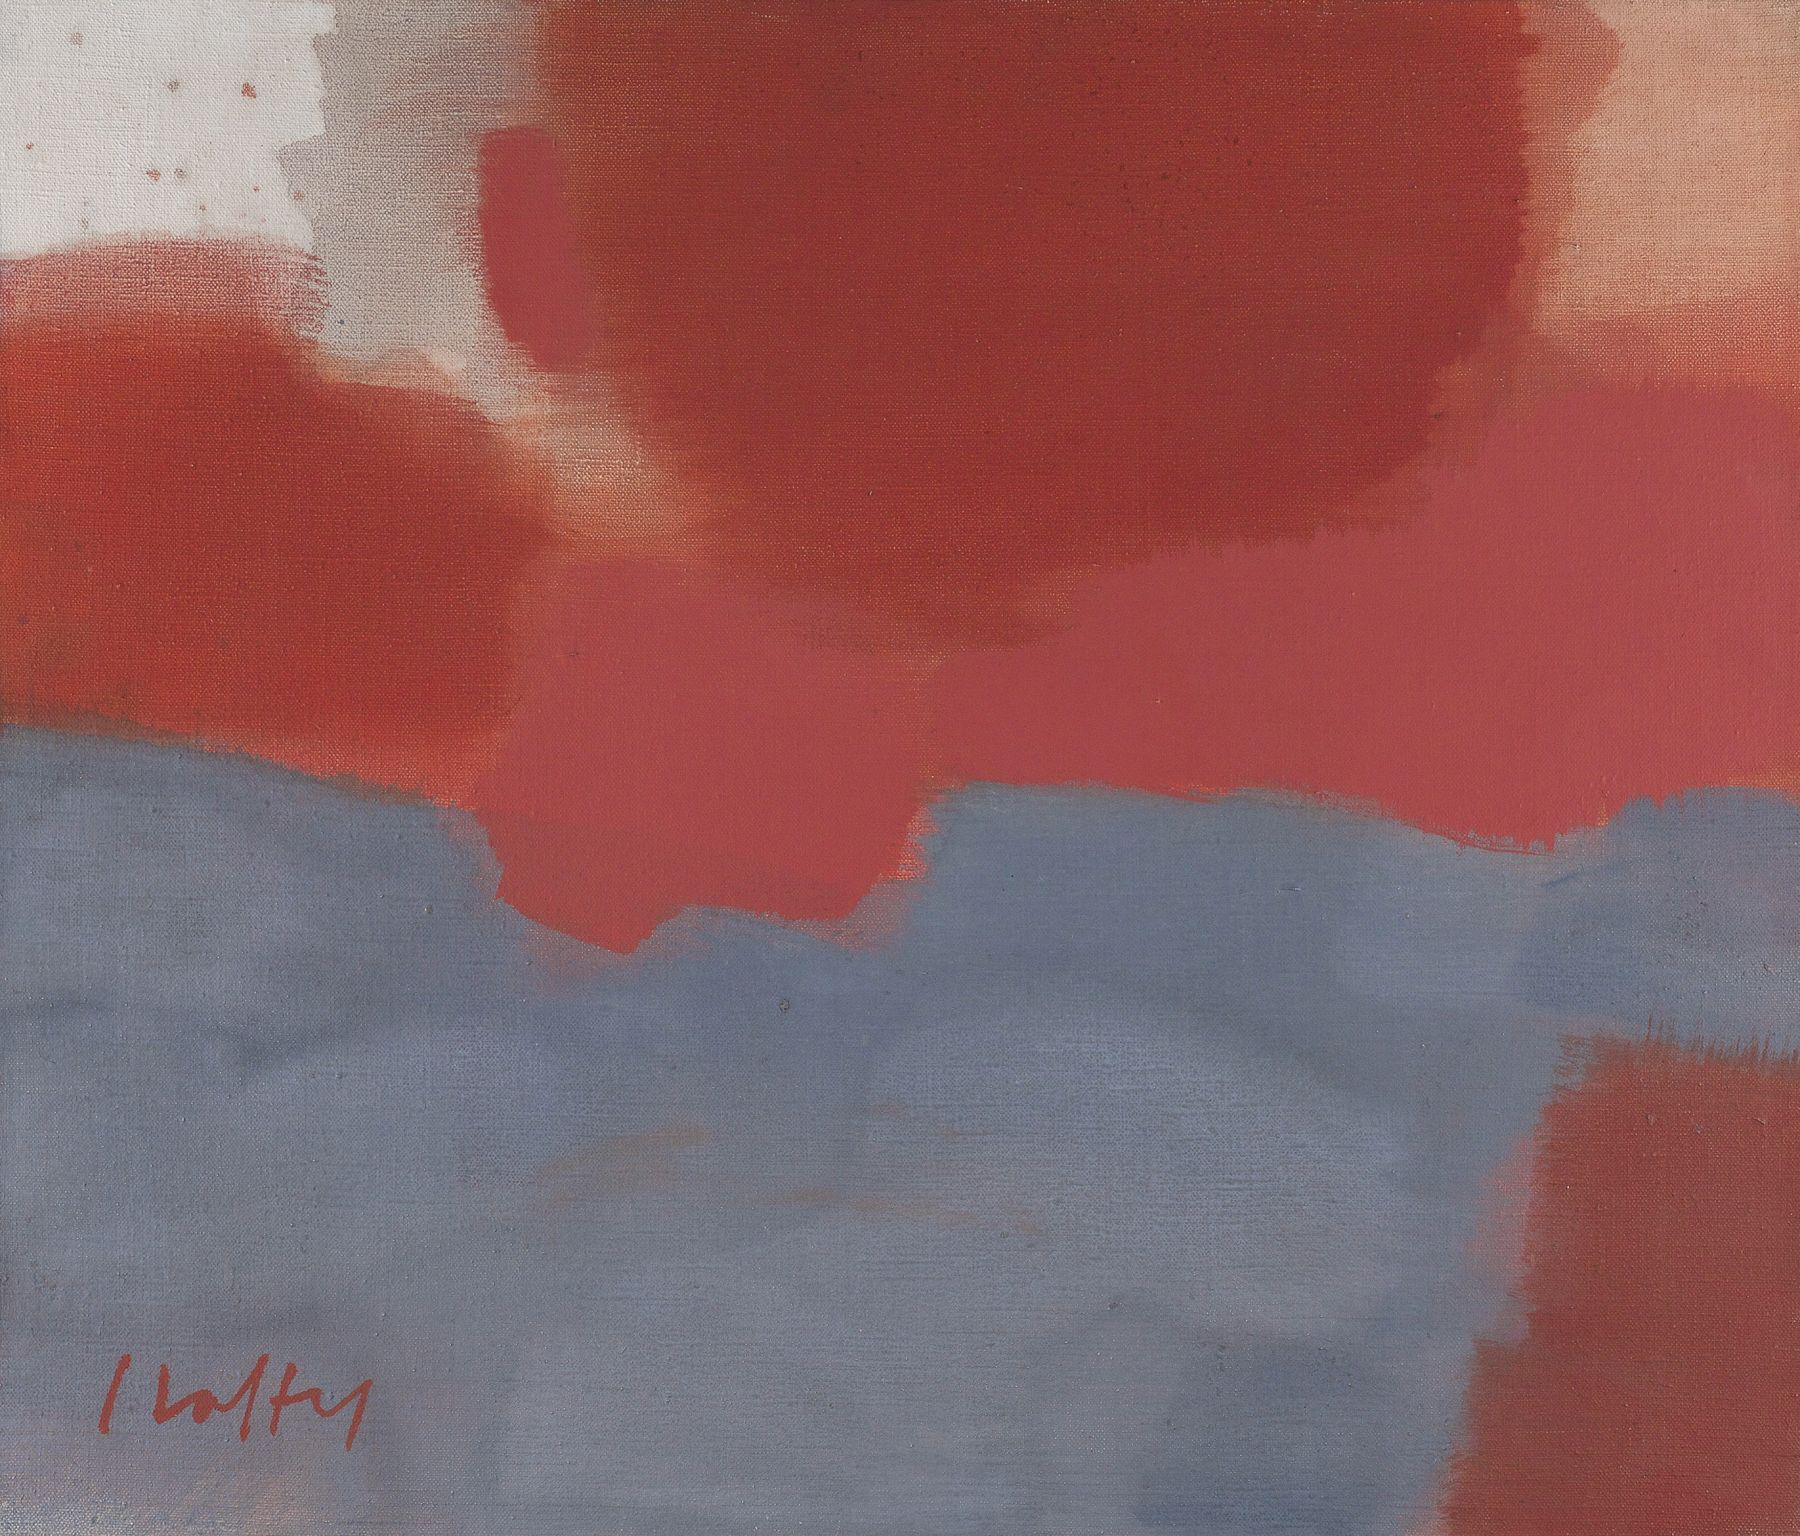 Carl Holty (1900-1973), Untitled (Peach and Gray Abstraction)